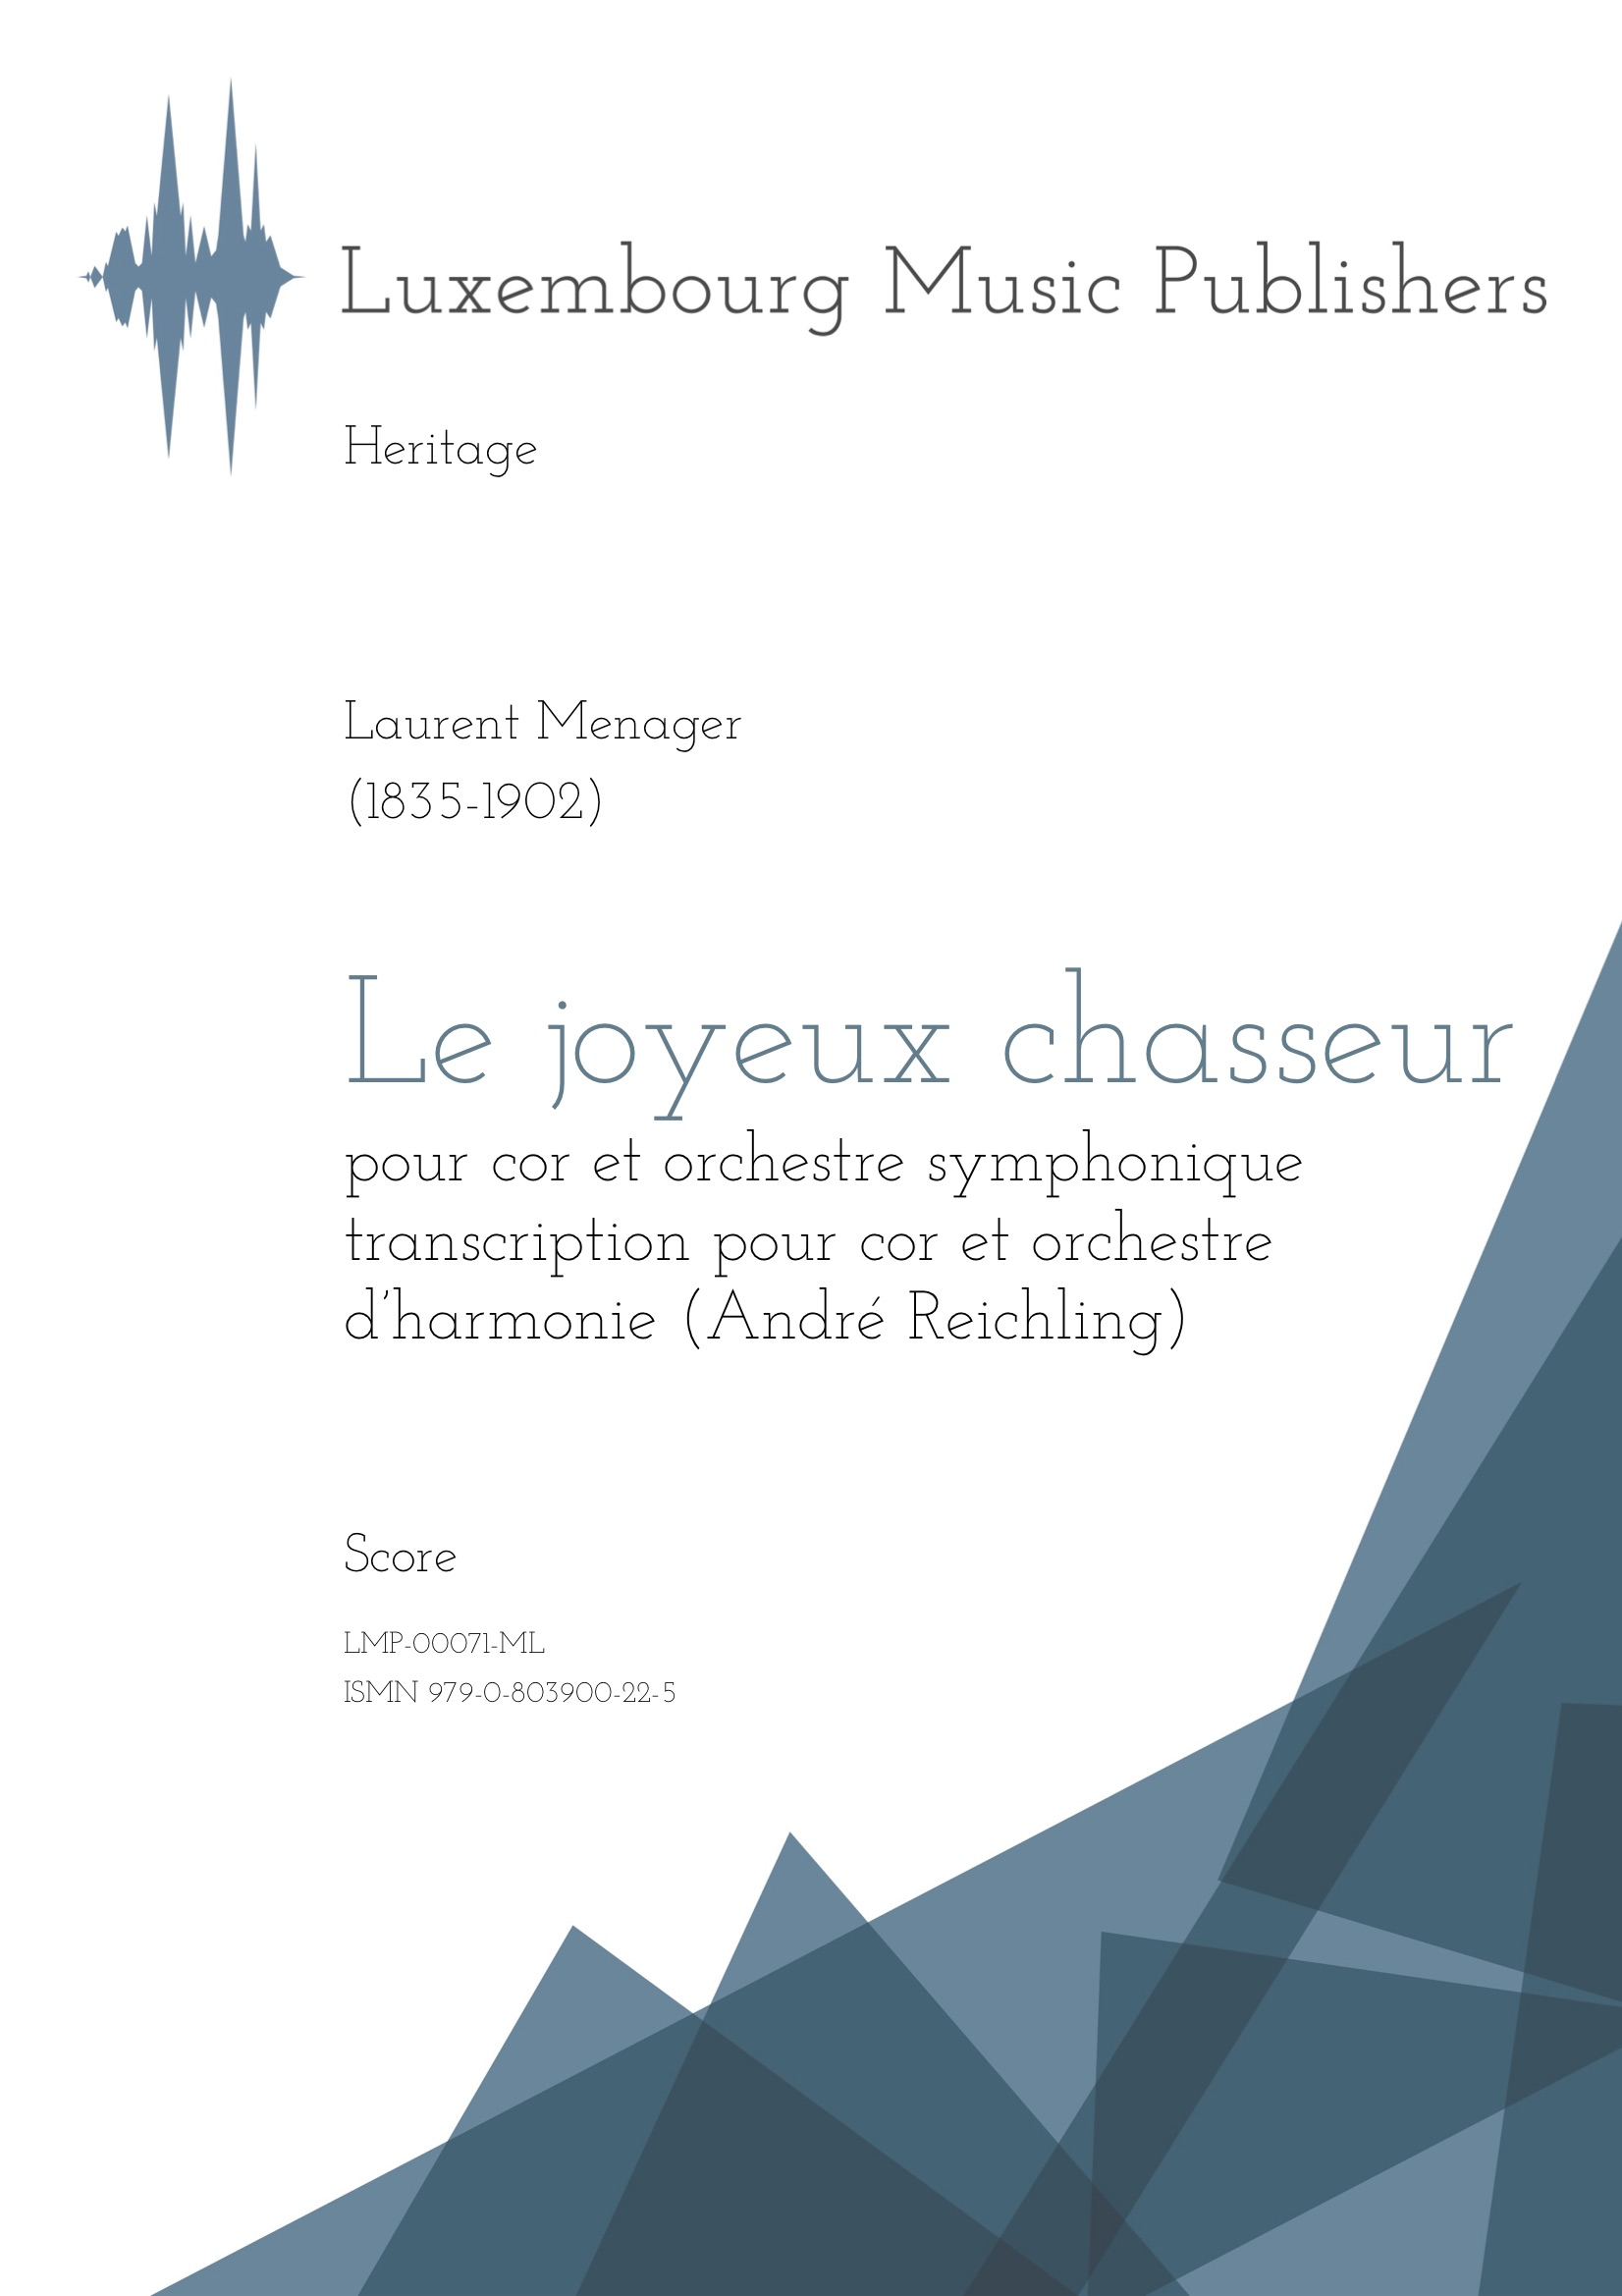 Le joyeux chasseur. Sheet Music by Laurent Menager, composer. Arranged by André Reichling, conductor. Music for horn solo and symphonic wind orchestra. Music for solo instrument and wind orchestra/band. Score.